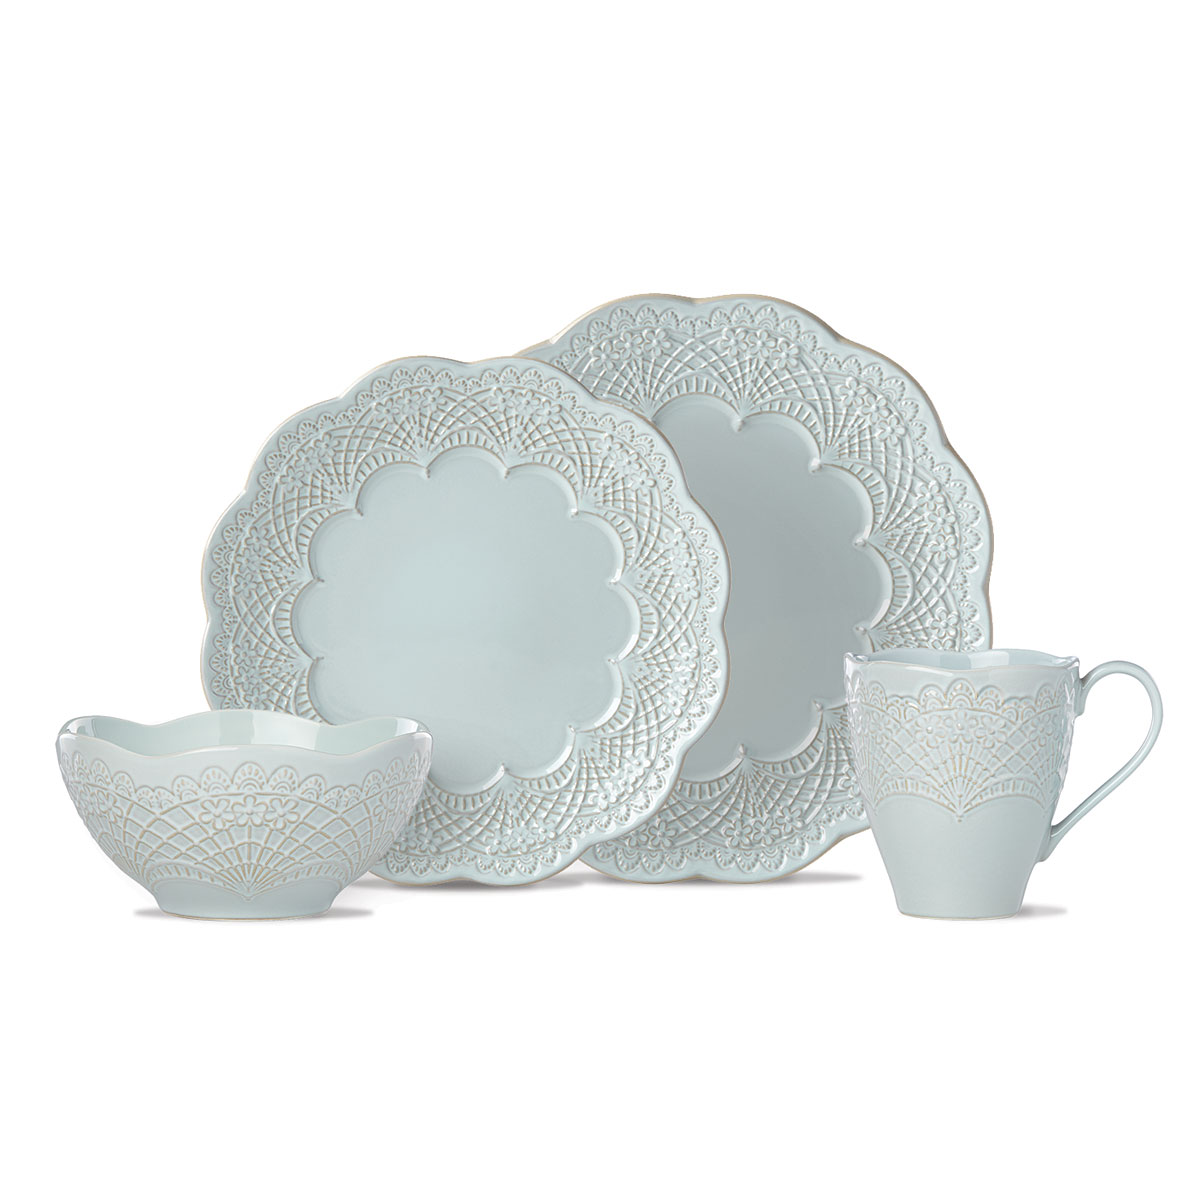 Lenox Chelse Muse Dinnerware Scallop Blue 4 Piece Place Setting